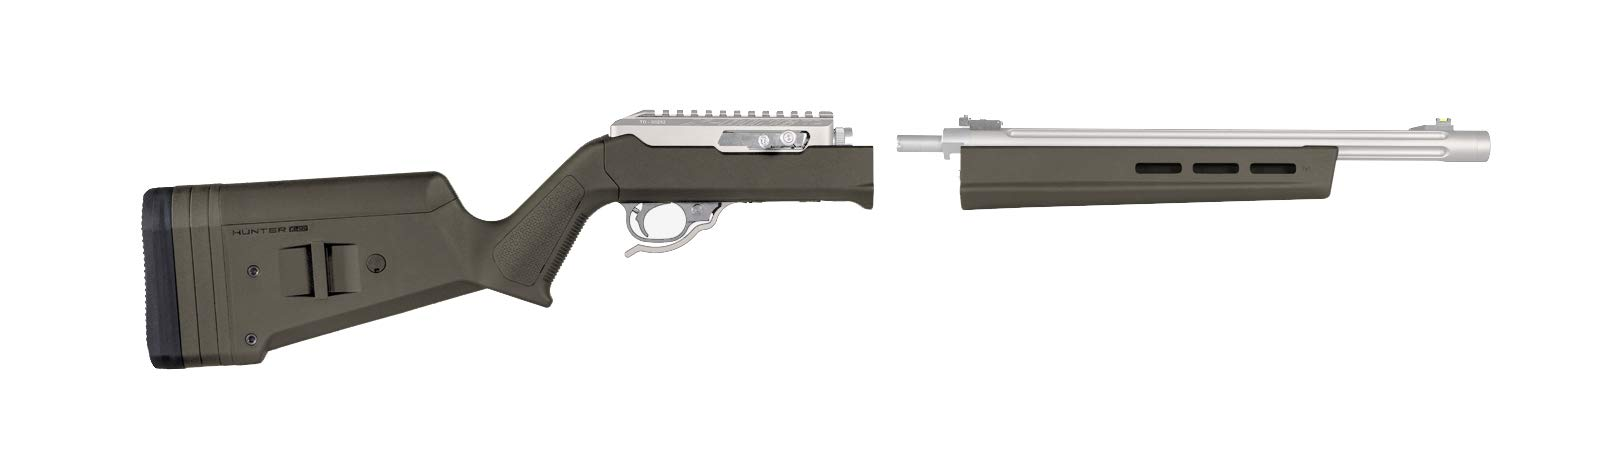 Magpul Hunter X-22 Takedown Stock for Ruger 10/22 Takedown MAG760-ODG by Magpul